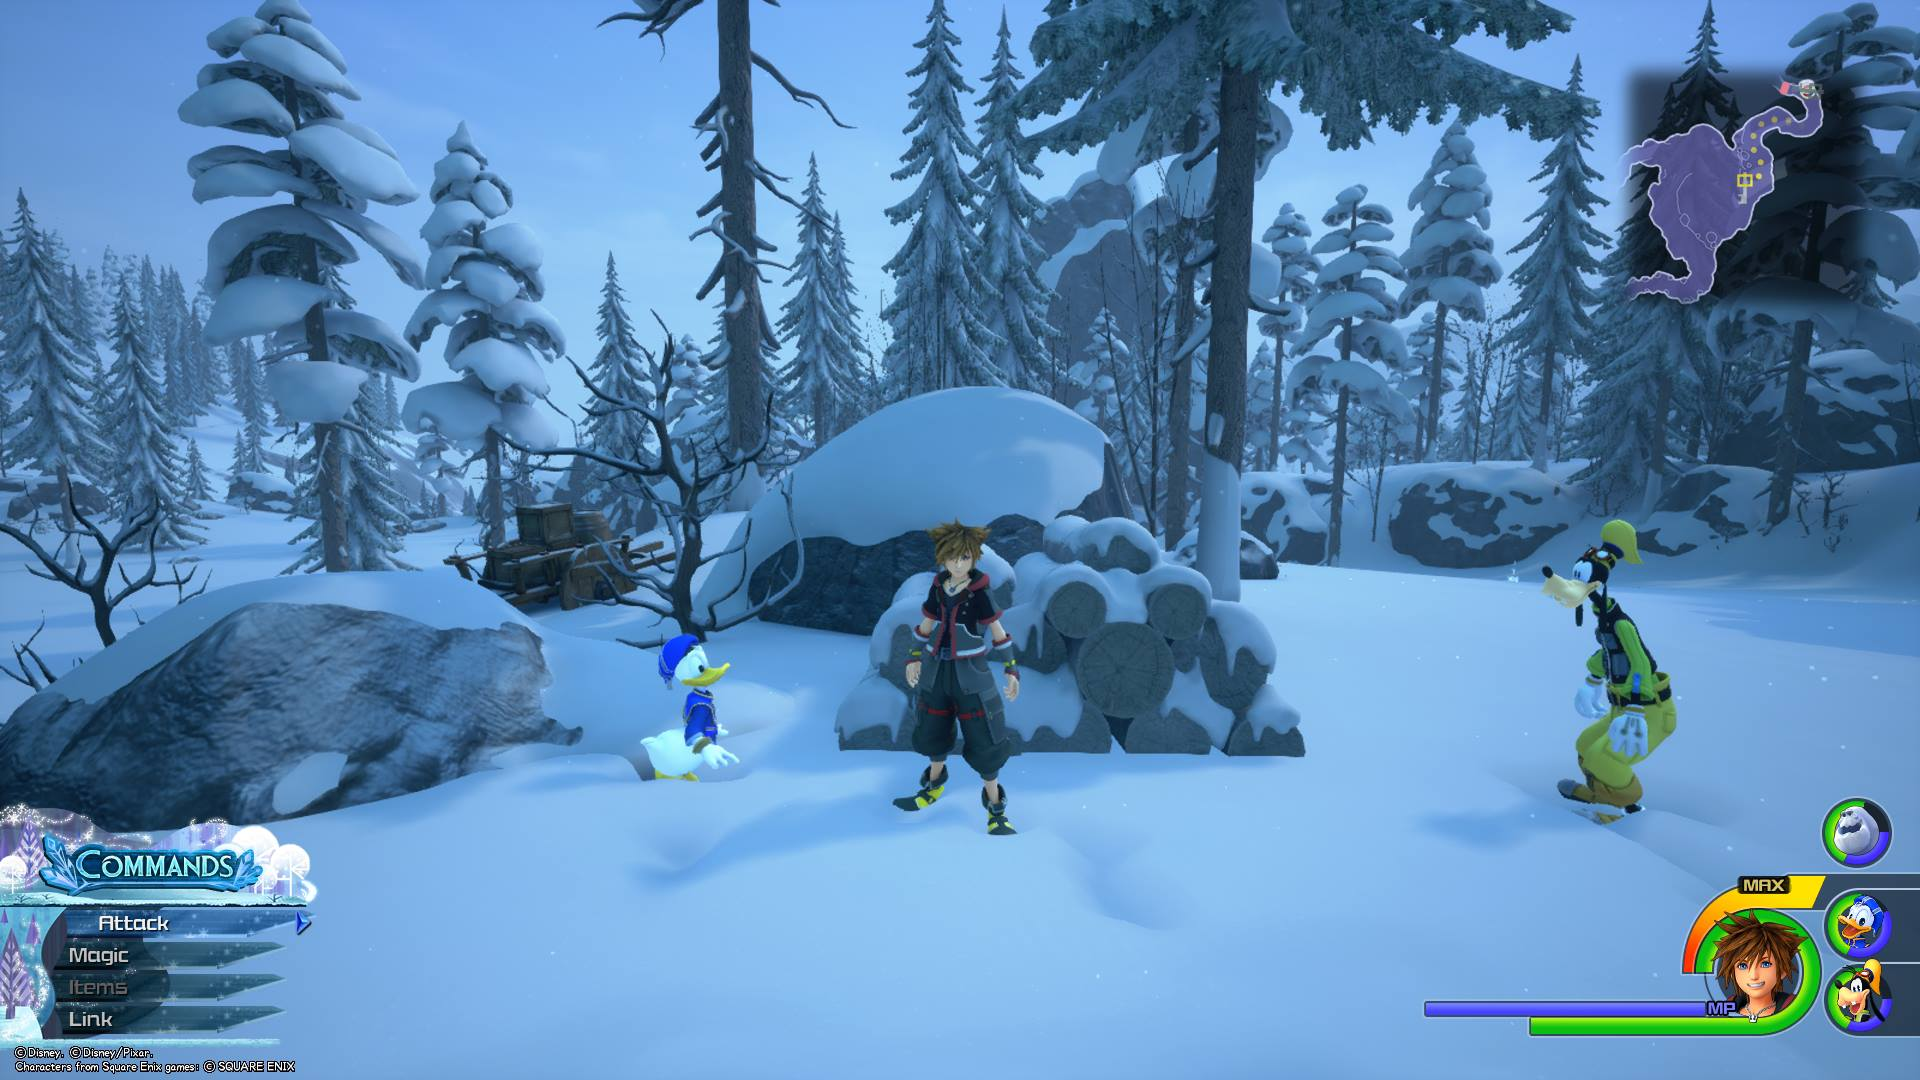 Head up and right from the Foothills spawn until you find a pile of logs. By viewing the logs from the front, you'll be able to capture the second Lucky Emblem in Arendelle.